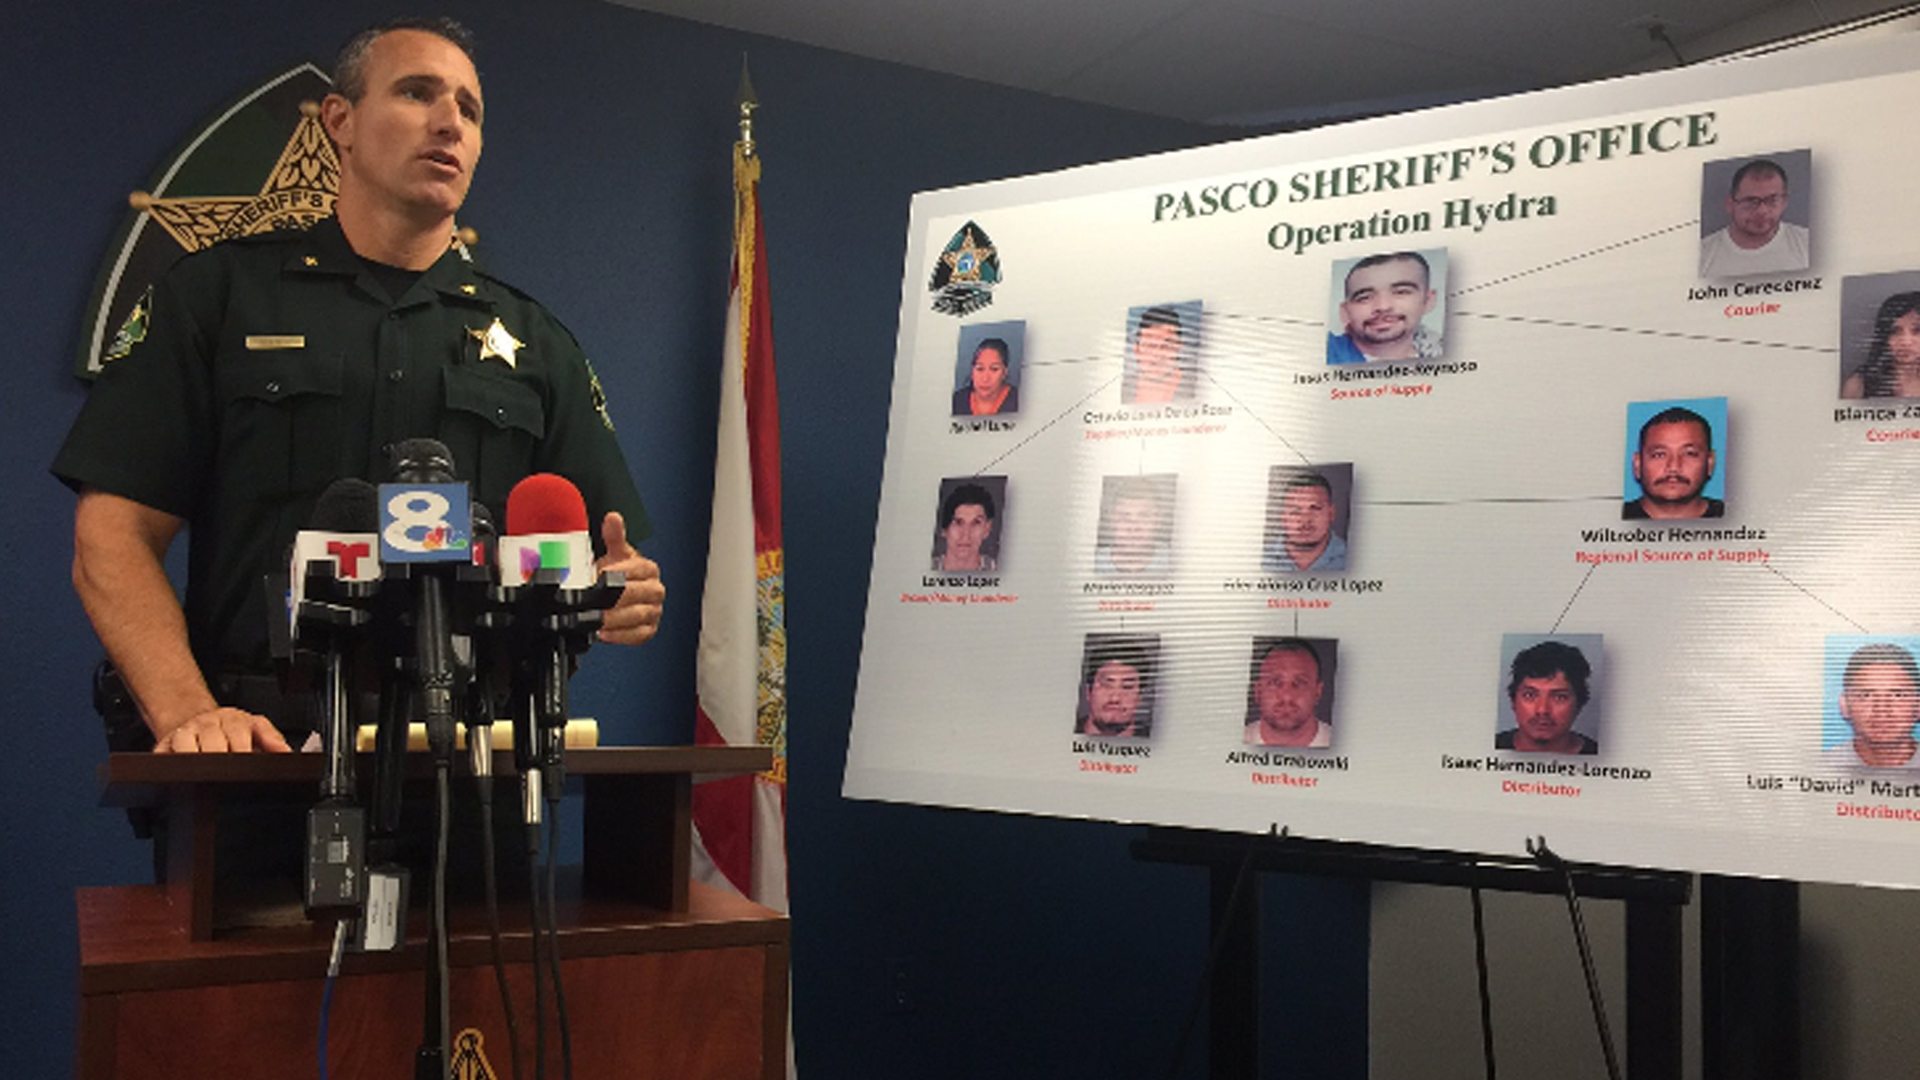 Pasco sheriff Major ring busted